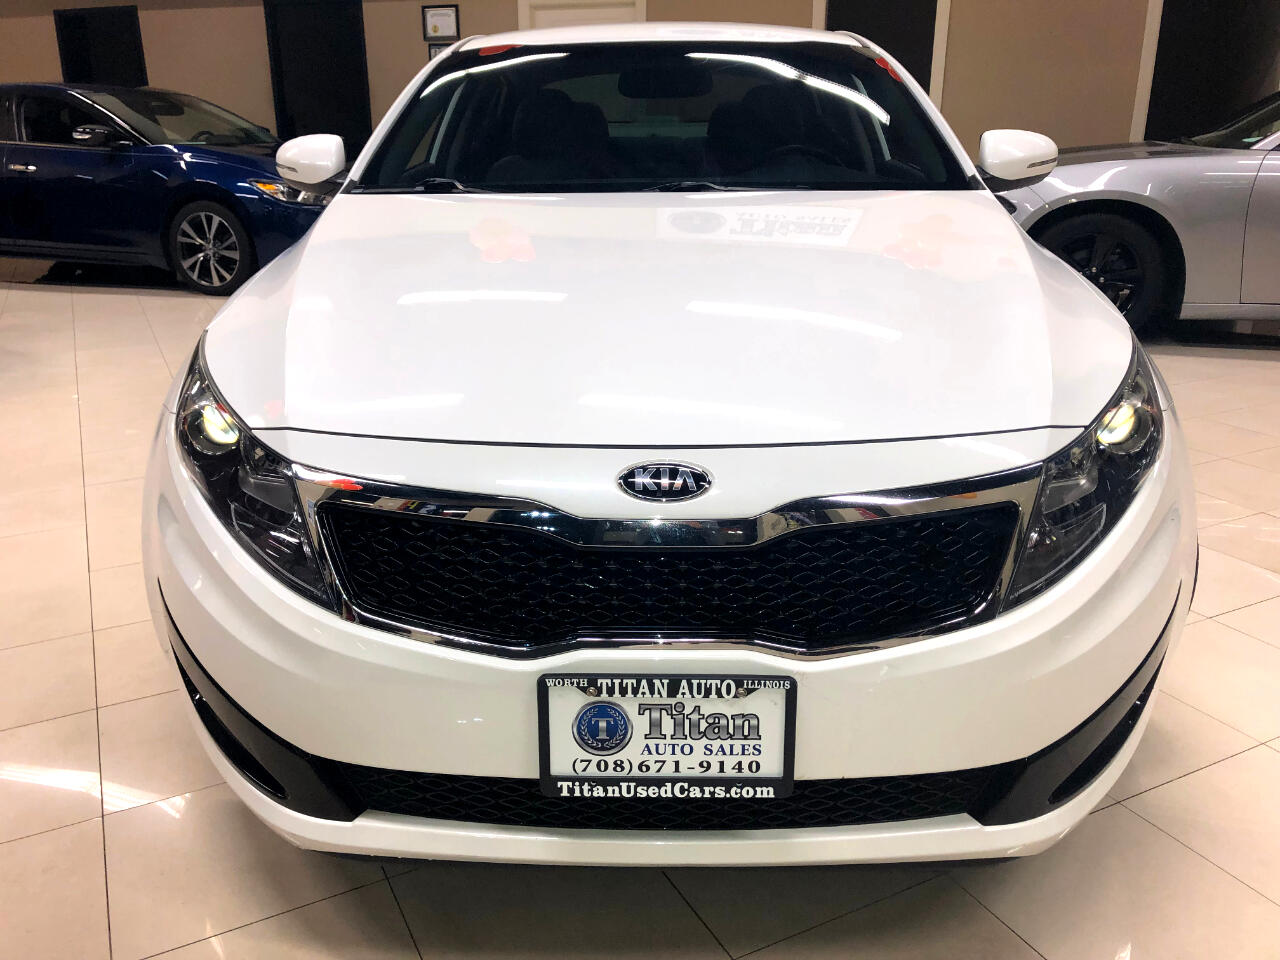 2013 Kia Optima EX